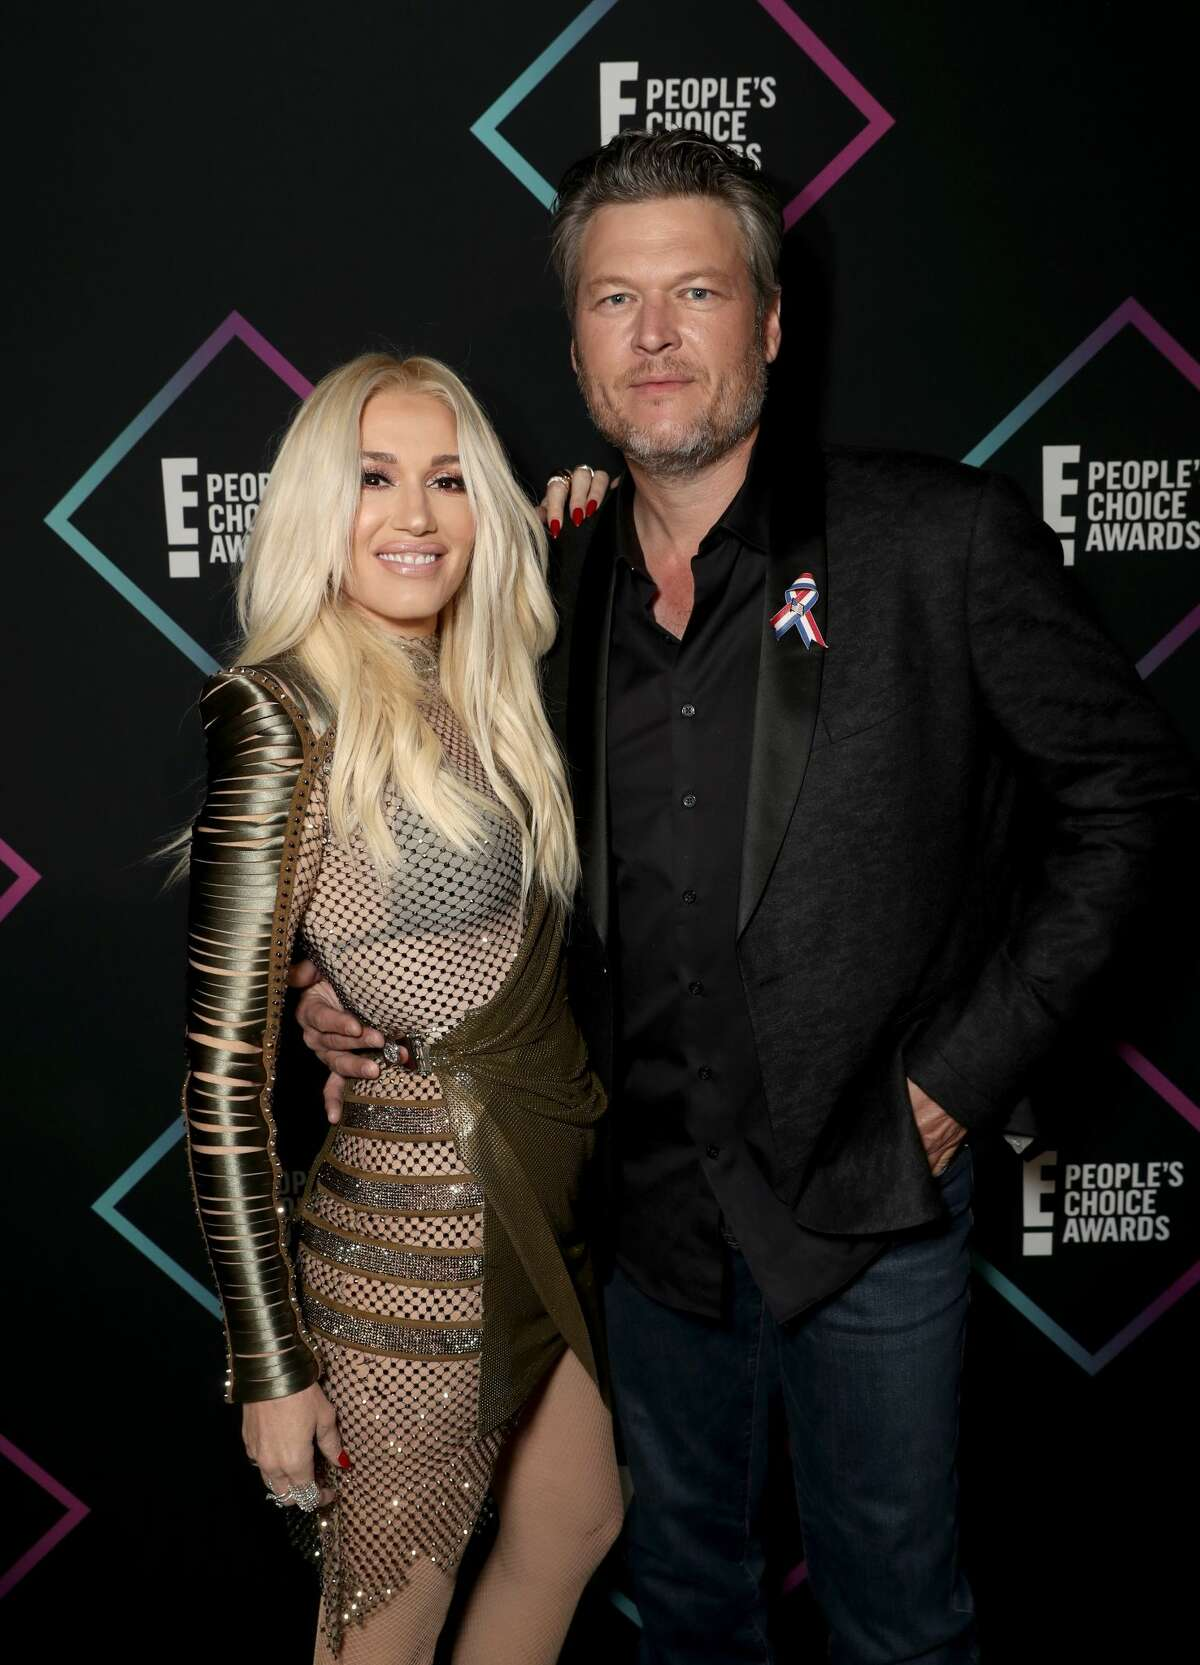 SANTA MONICA, CA - NOVEMBER 11: 2018 E! PEOPLE'S CHOICE AWARDS -- Pictured: (l-r) Gwen Stefani and Blake Shelton backstage during the 2018 E! People's Choice Awards held at the Barker Hangar on November 11, 2018 -- NUP_185073 -- (Photo by Todd Williamson/E! Entertainment/NBCU Photo Bank via Getty Images)